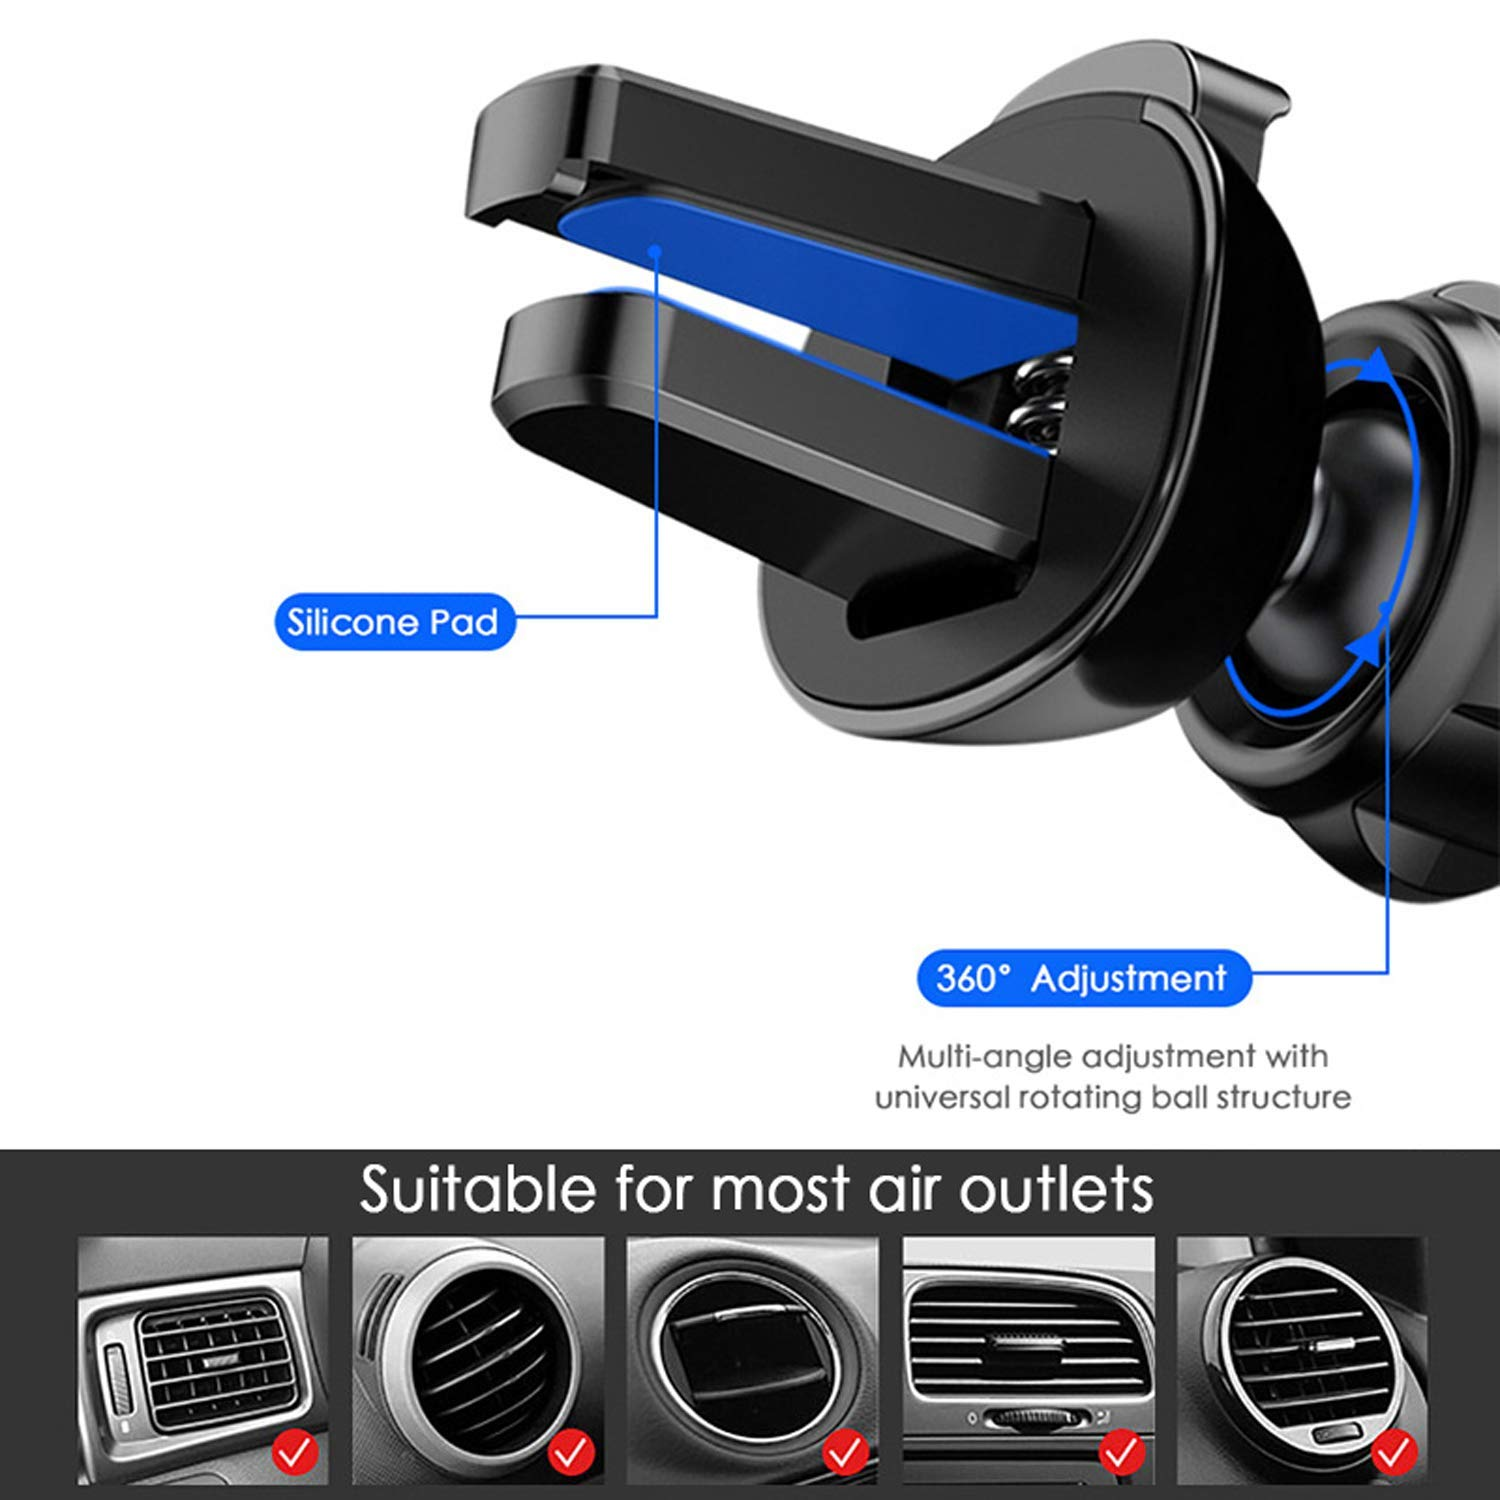 Black Car Phone Holder 360/°Rotation Deformable Universal Mobile Phone Holder for Phone in Car Air Vent Mount Car Holder Stand for 4.7-6.5 inch Mobile Phones